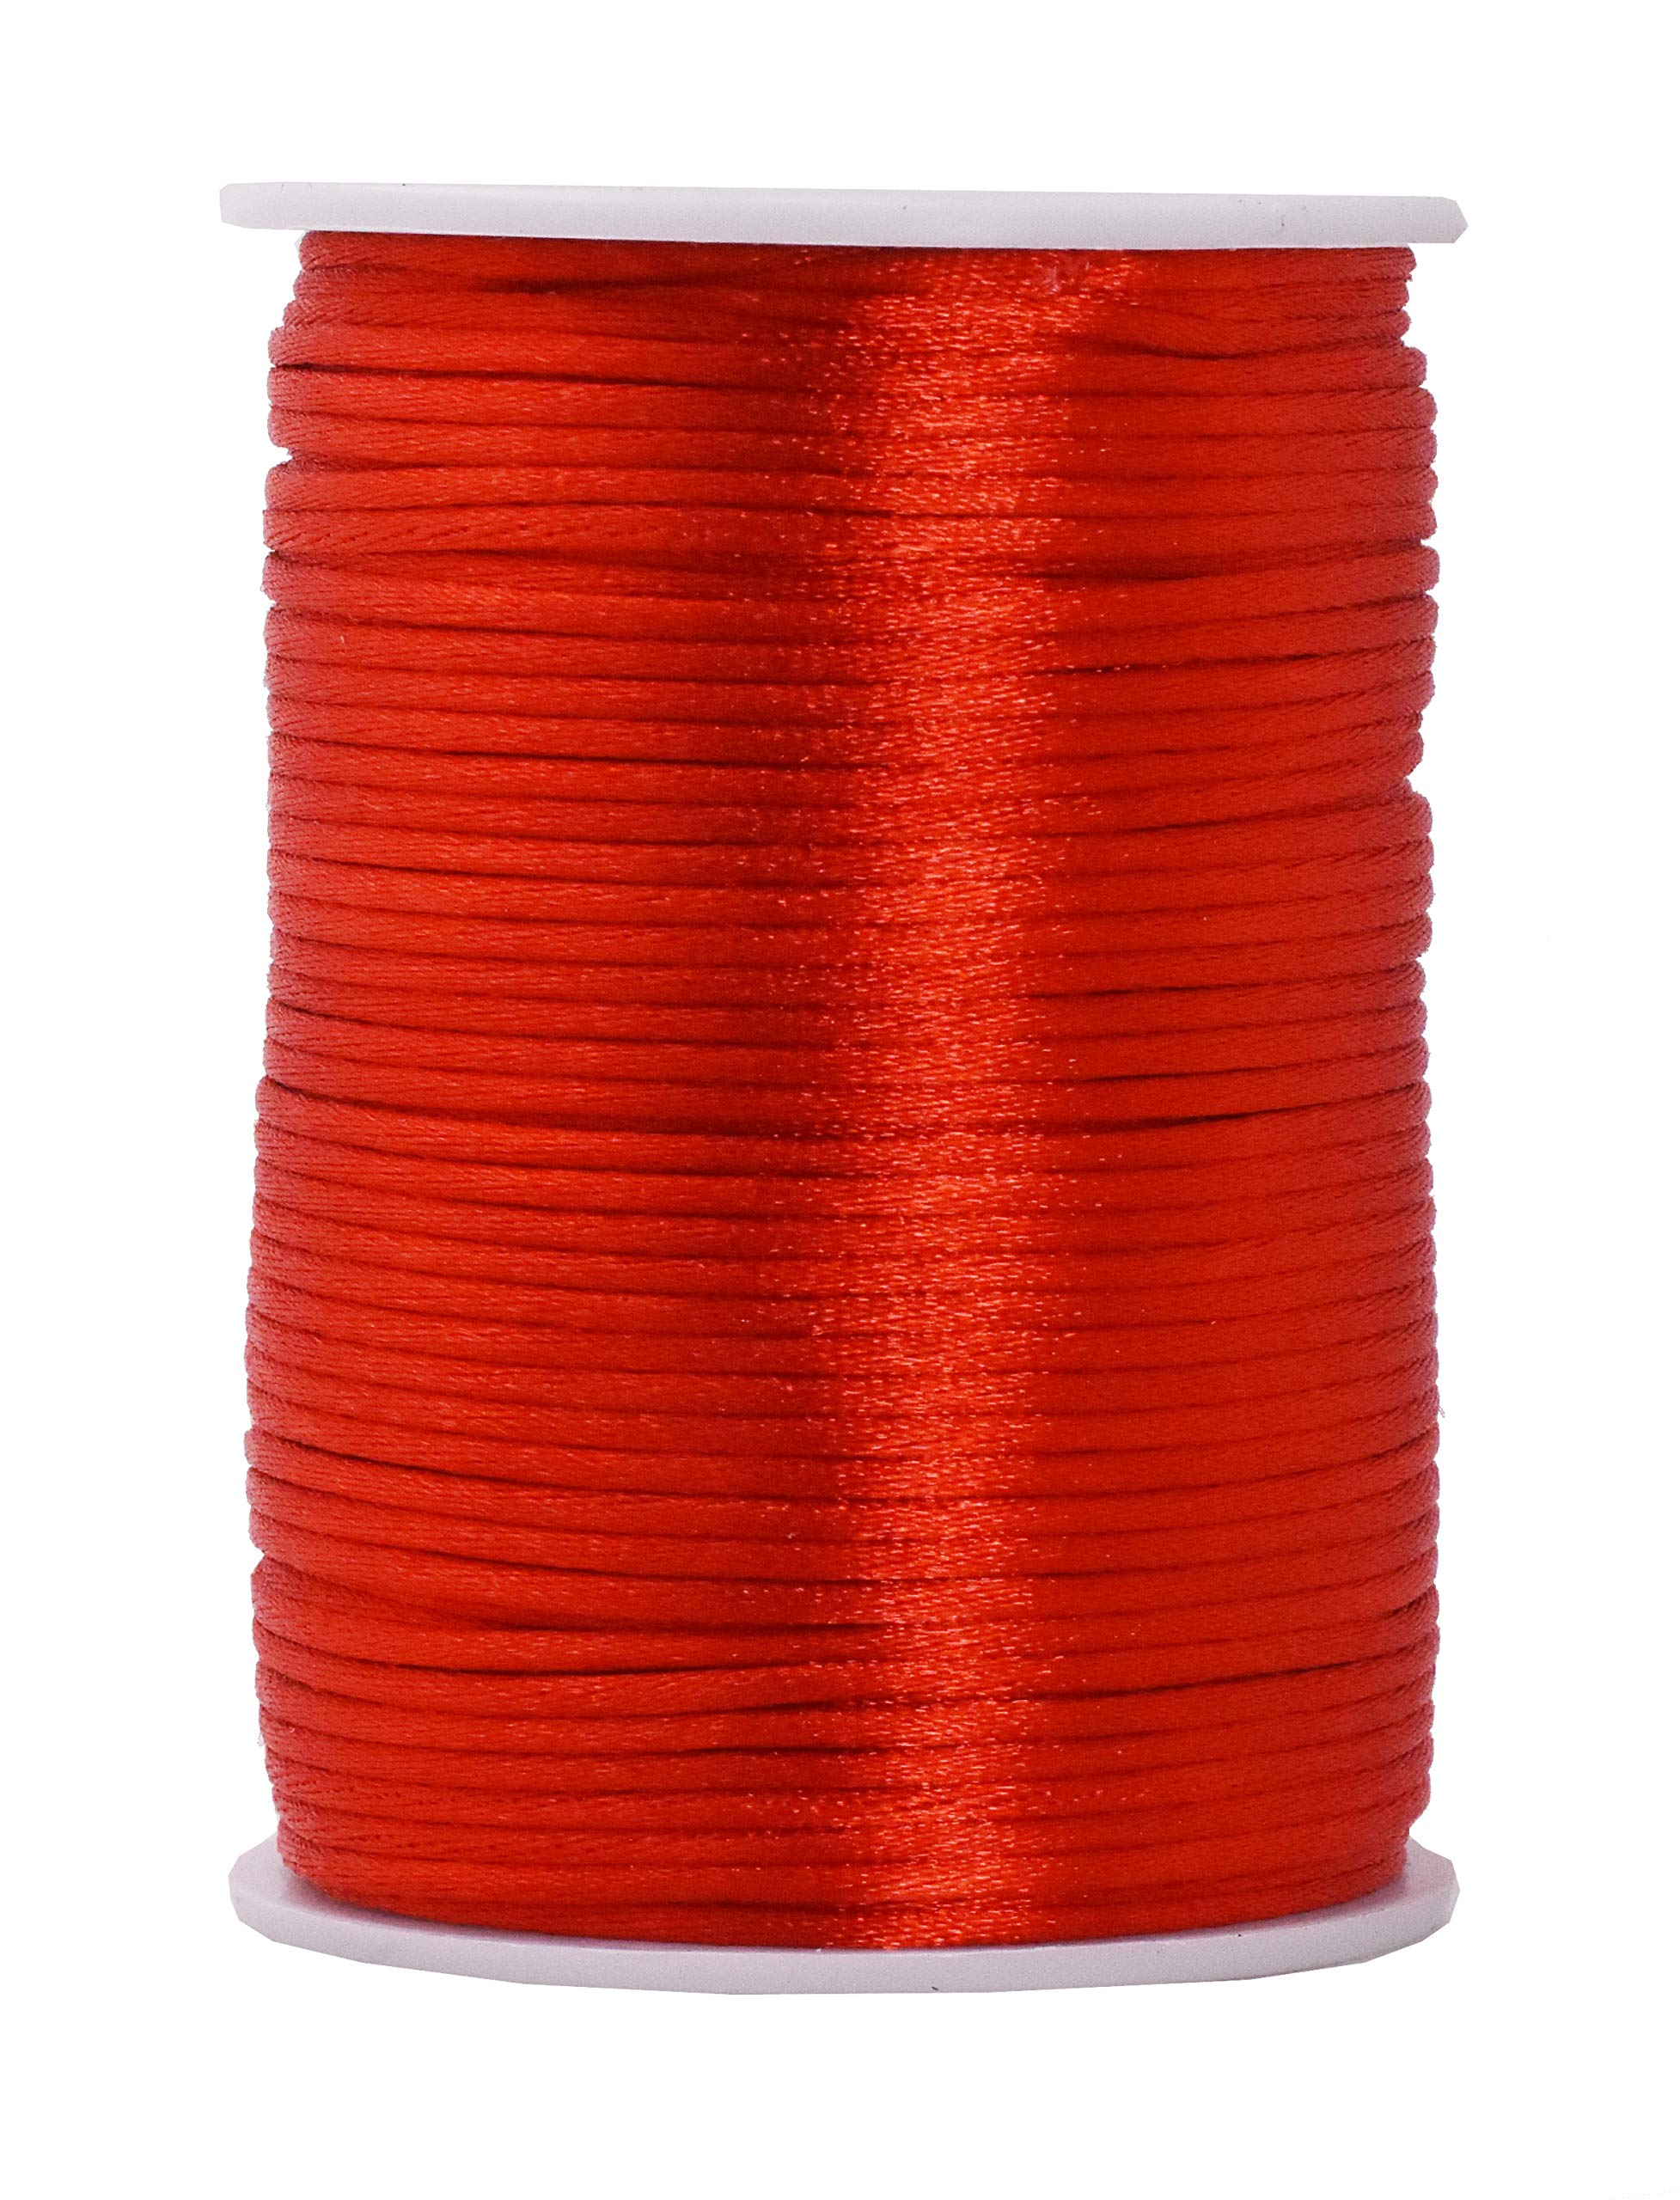 Mandala Crafts Satin Rattail Cord String from Nylon for Chinese Knot, Macramé, Trim, Jewelry Making (Red, 2mm)